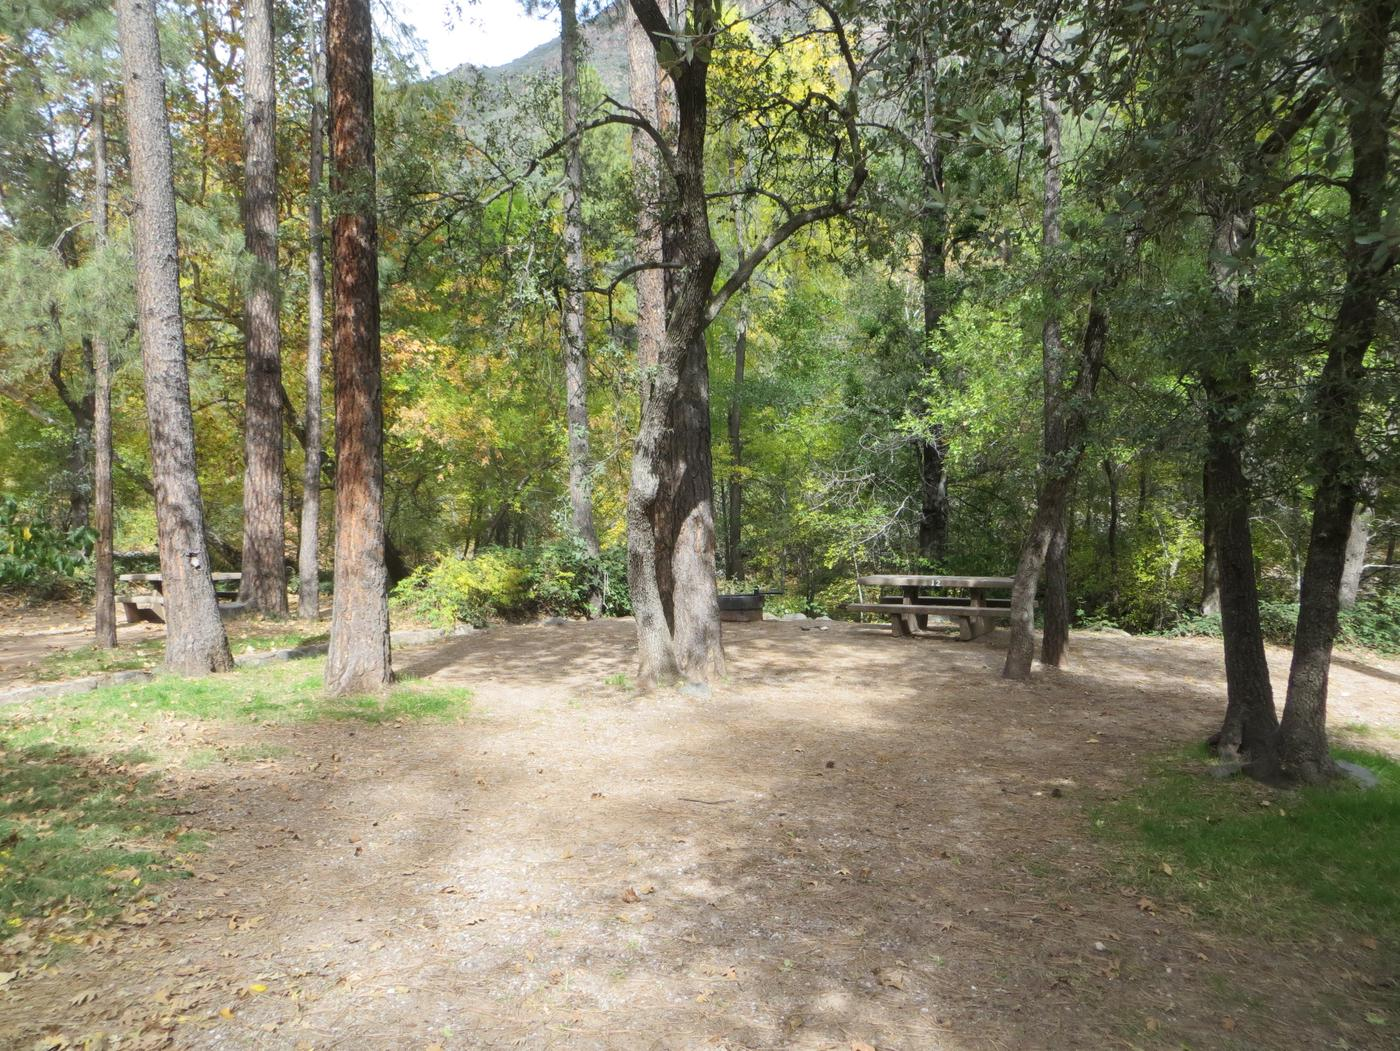 Manzanita Campground site #12 featuring the treed picnic area, camping space, and fire pit.